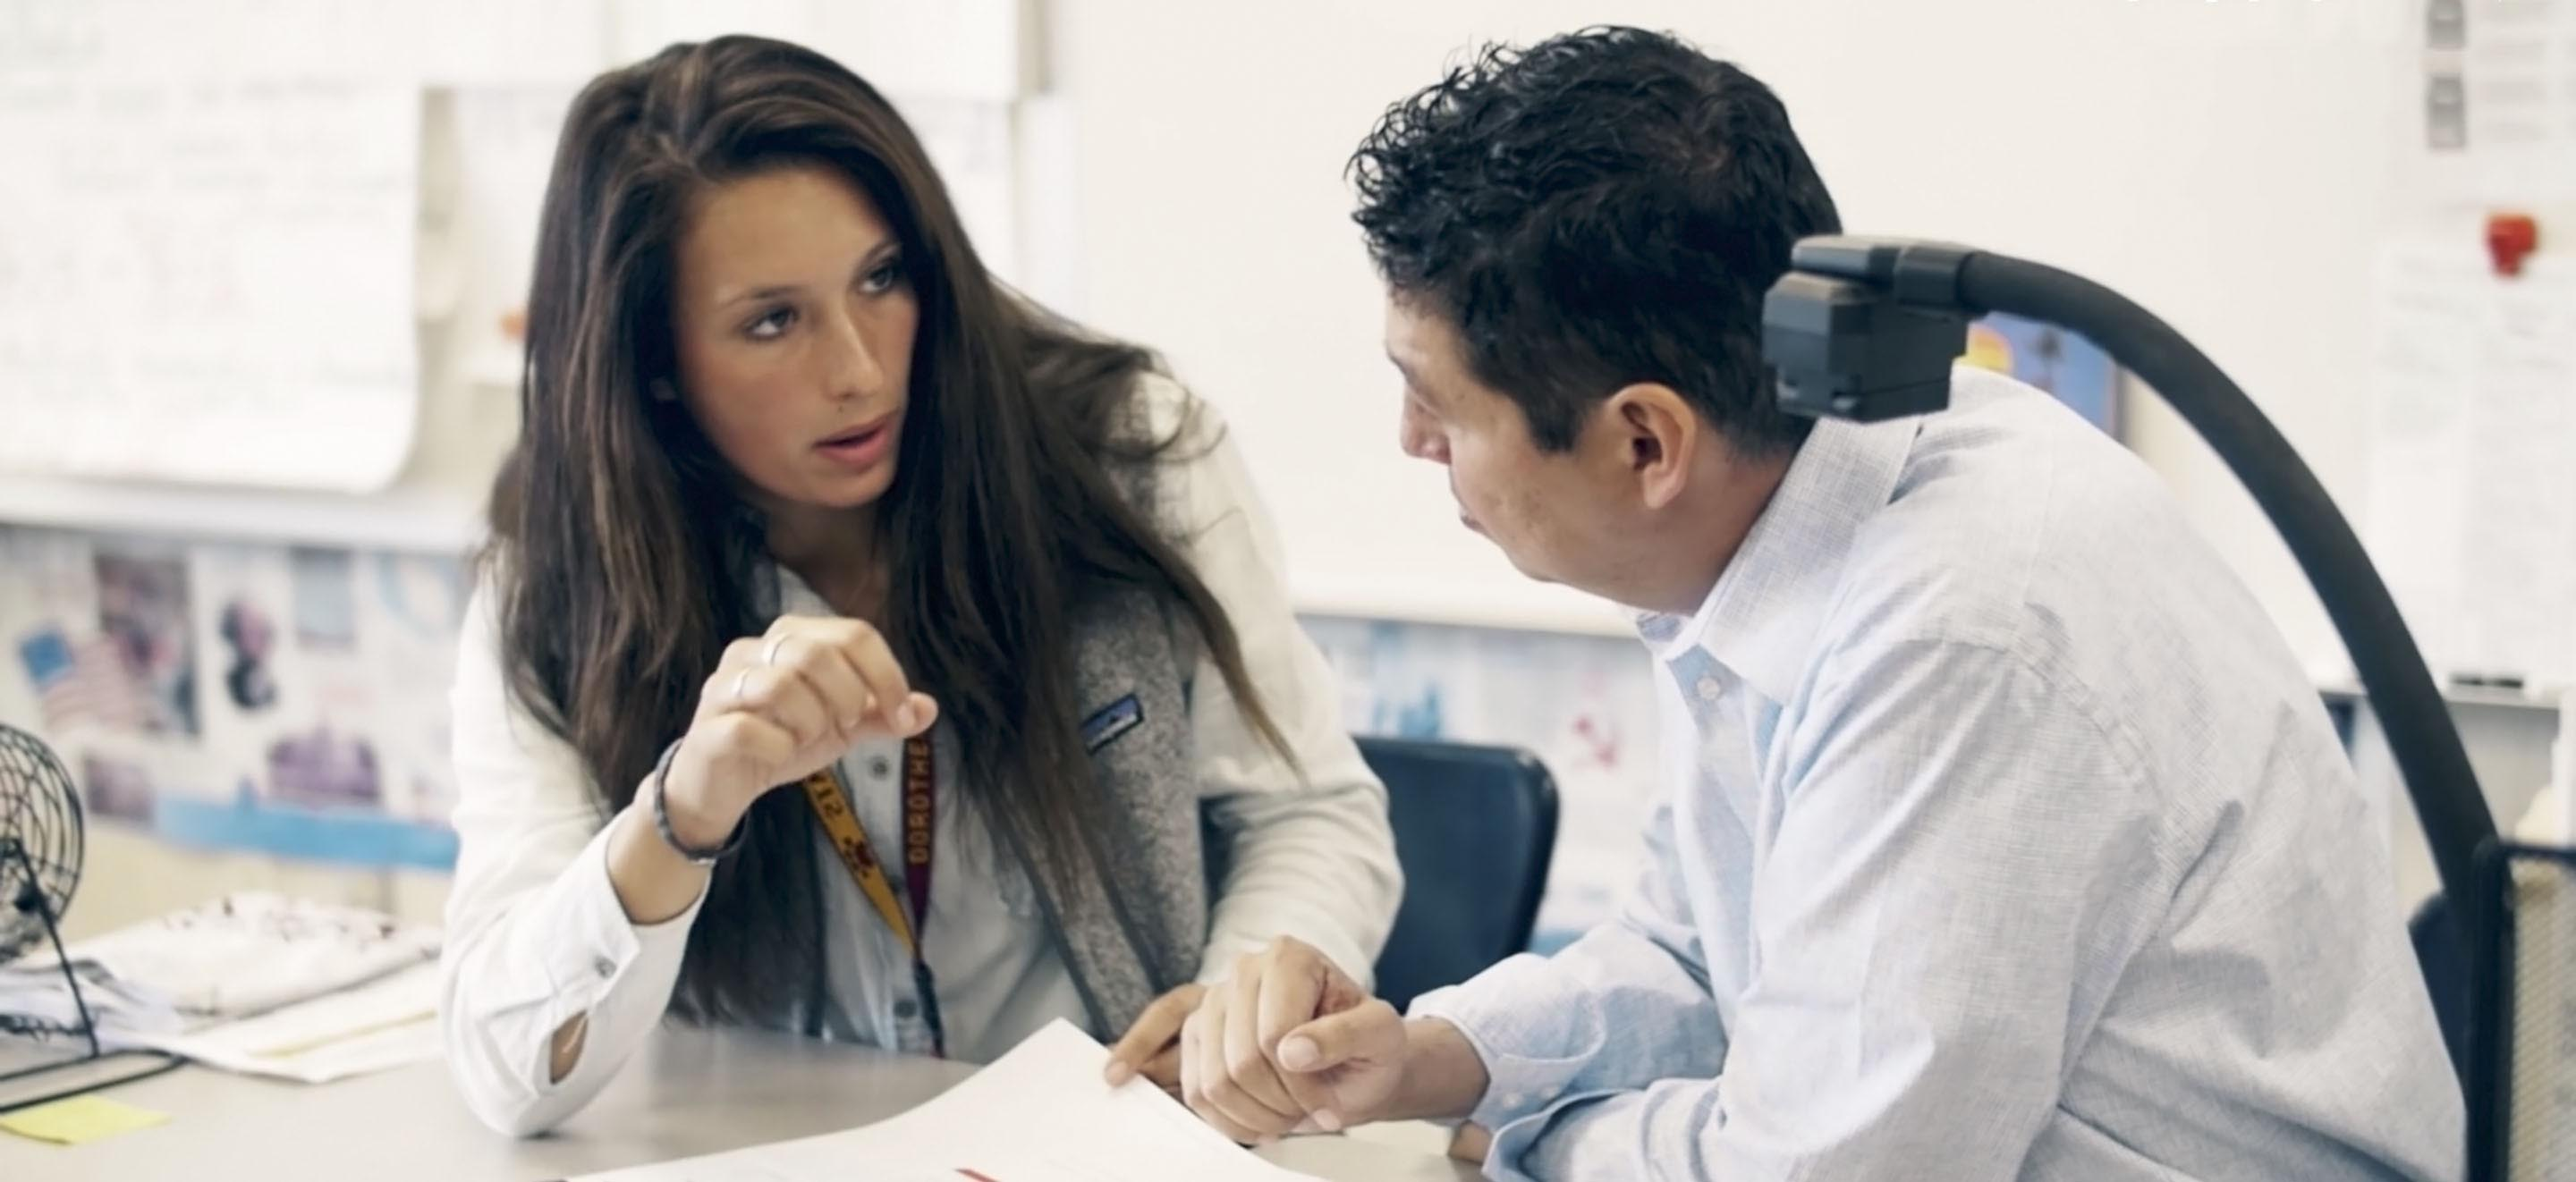 stock image. two adults reviewing papers in a classroom setting.